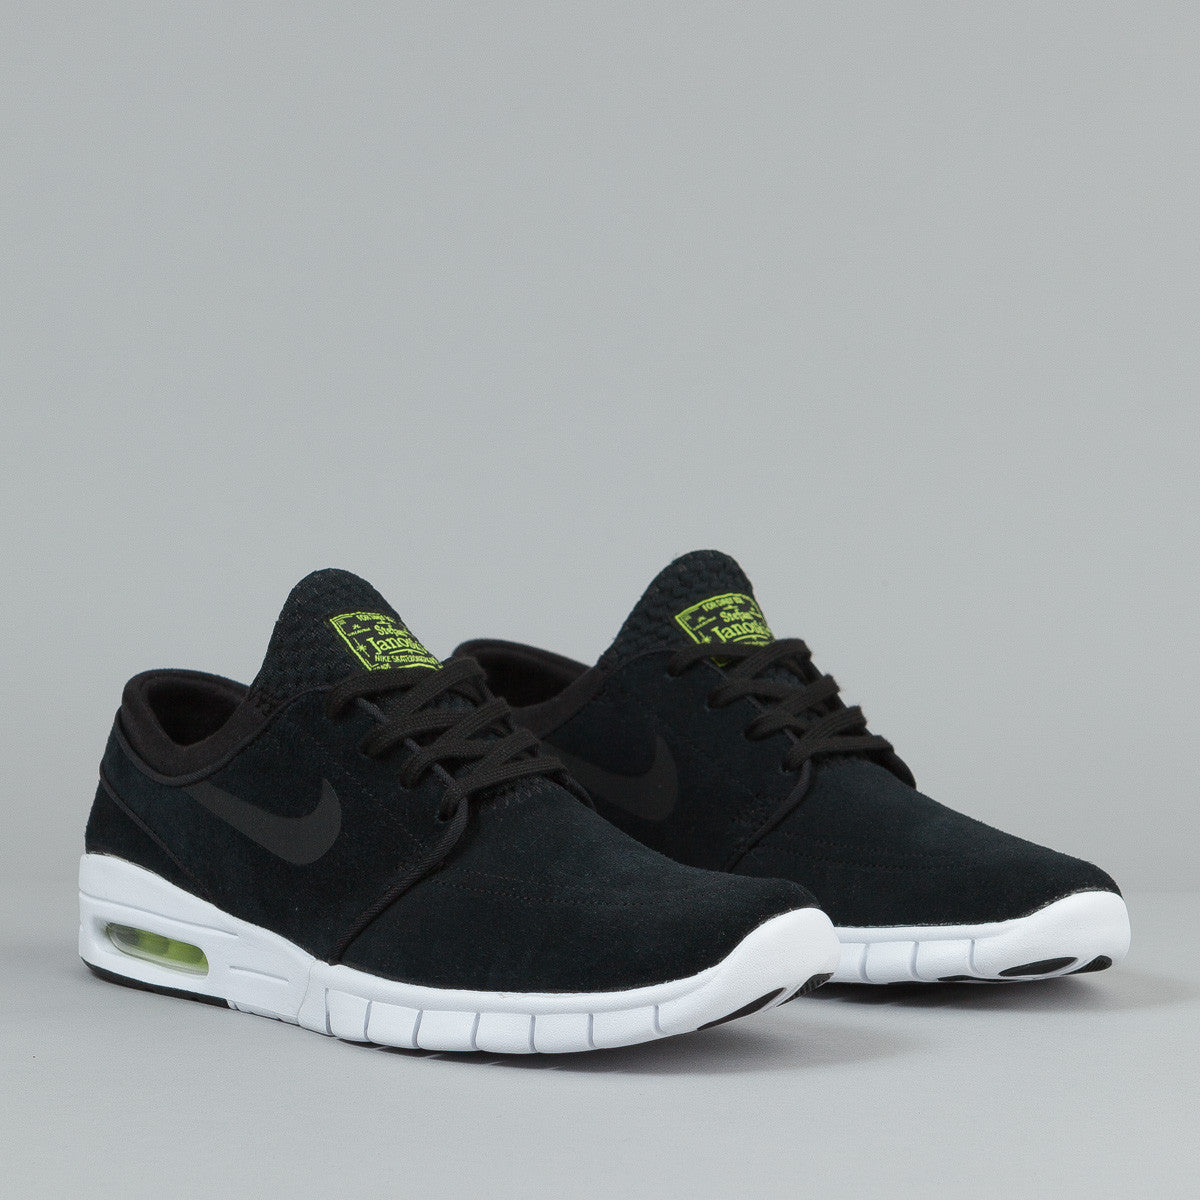 nike sb stefan janoski max suede shoes black black cyber white flatspot. Black Bedroom Furniture Sets. Home Design Ideas